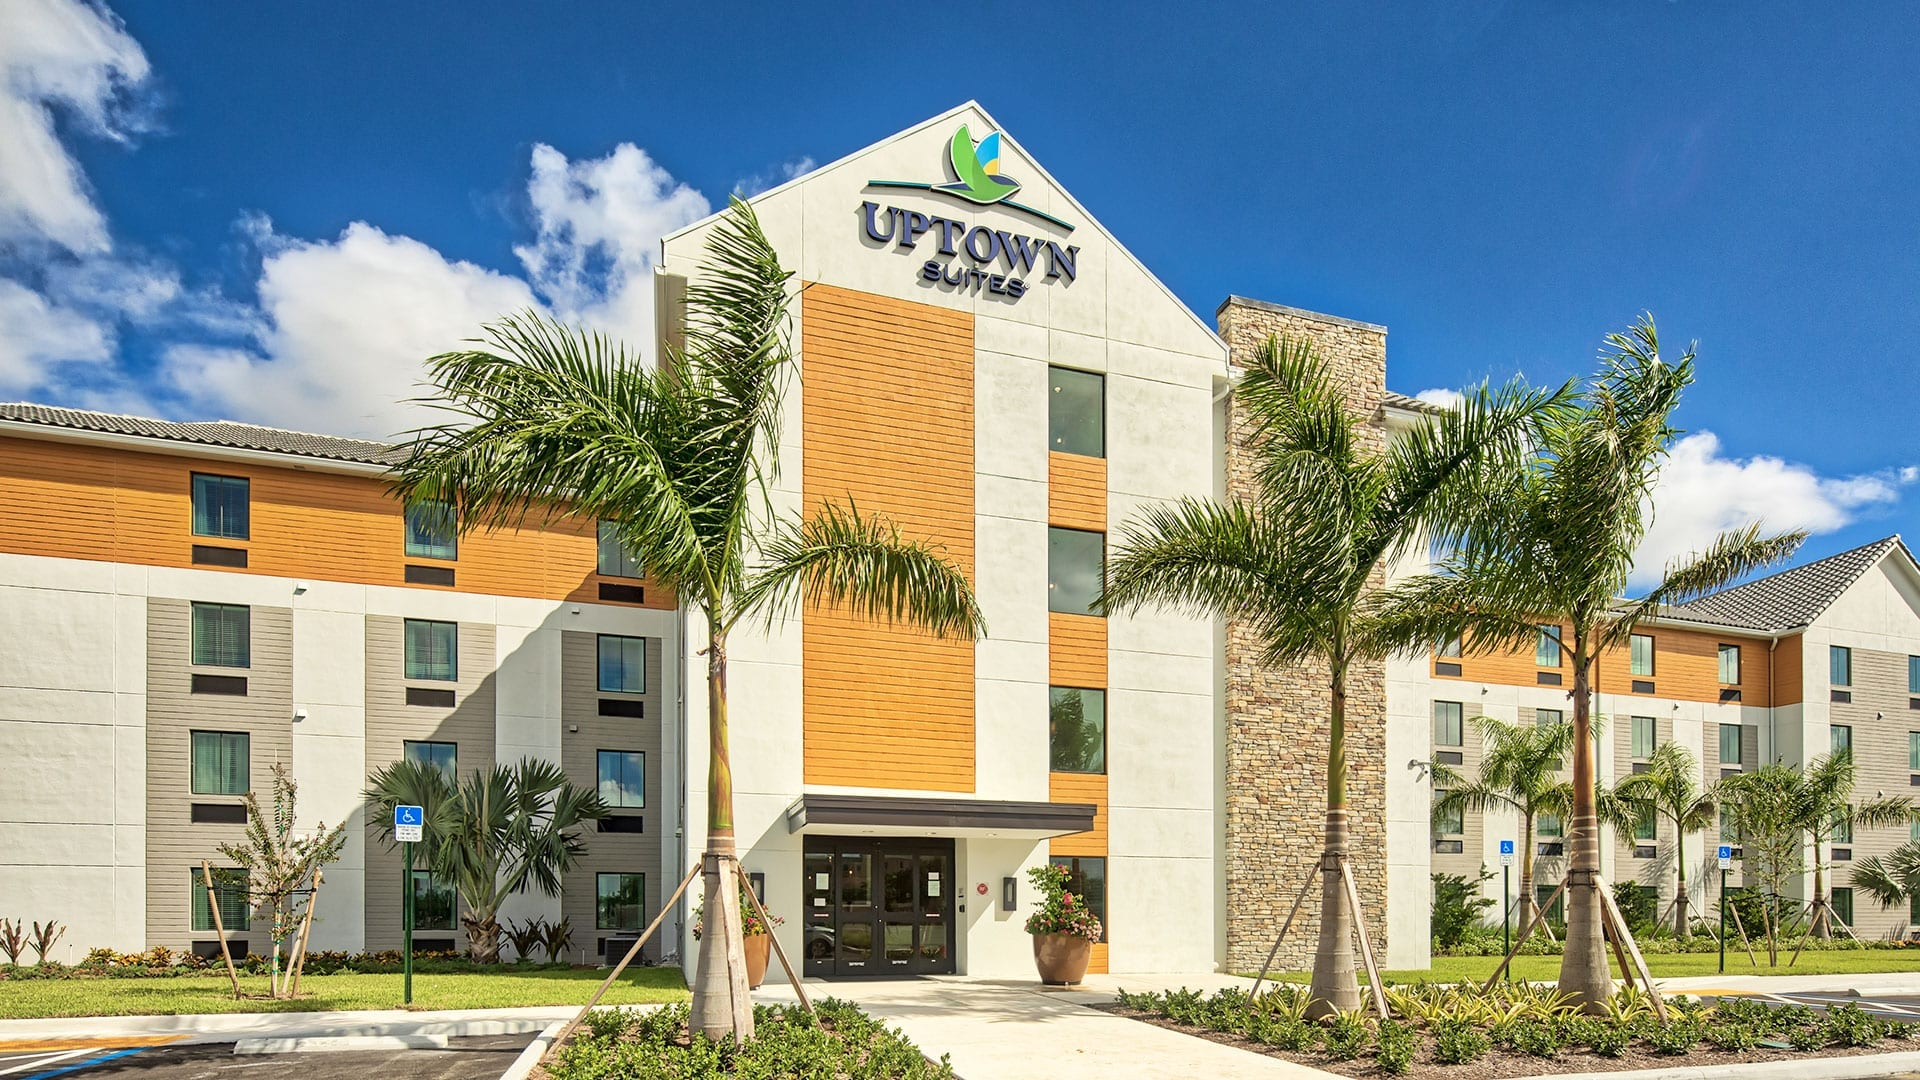 Uptown/In-town Suites Hotel - Designed Swedroe Architecture